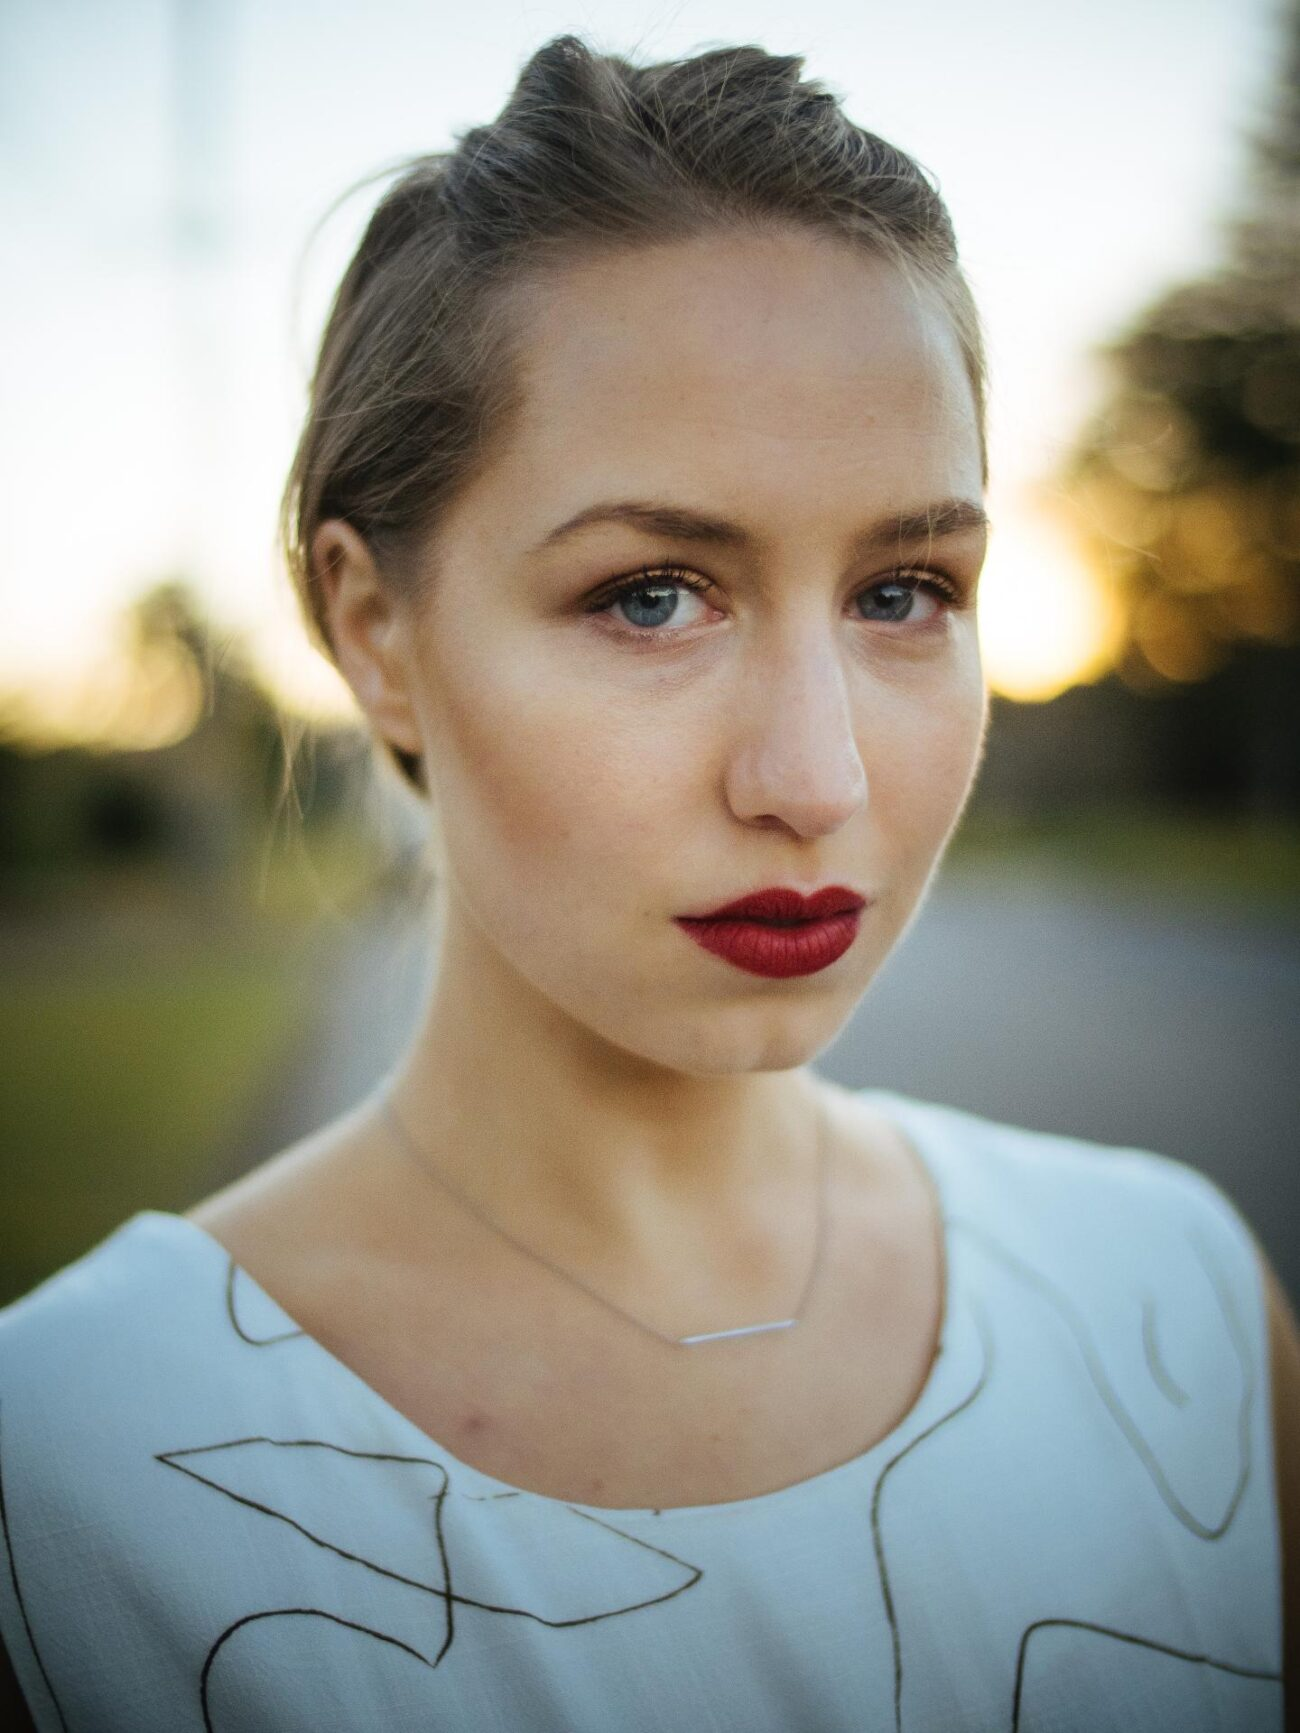 Izzy Stevens is a writer, director, and actress. Learn about her busy career and her new online school here.